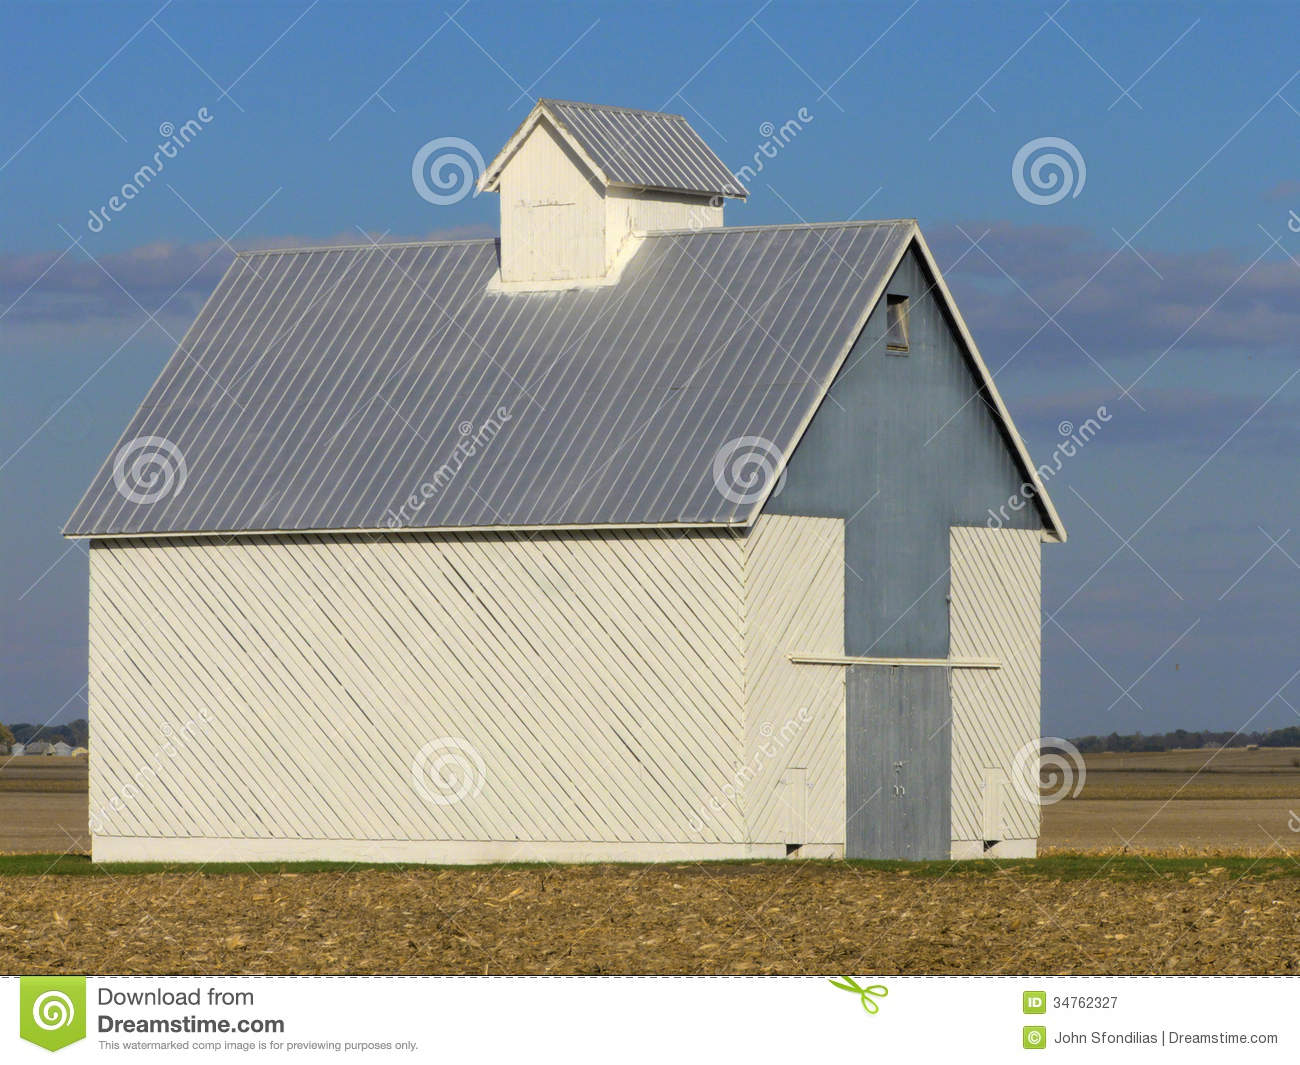 Midwestern Shed